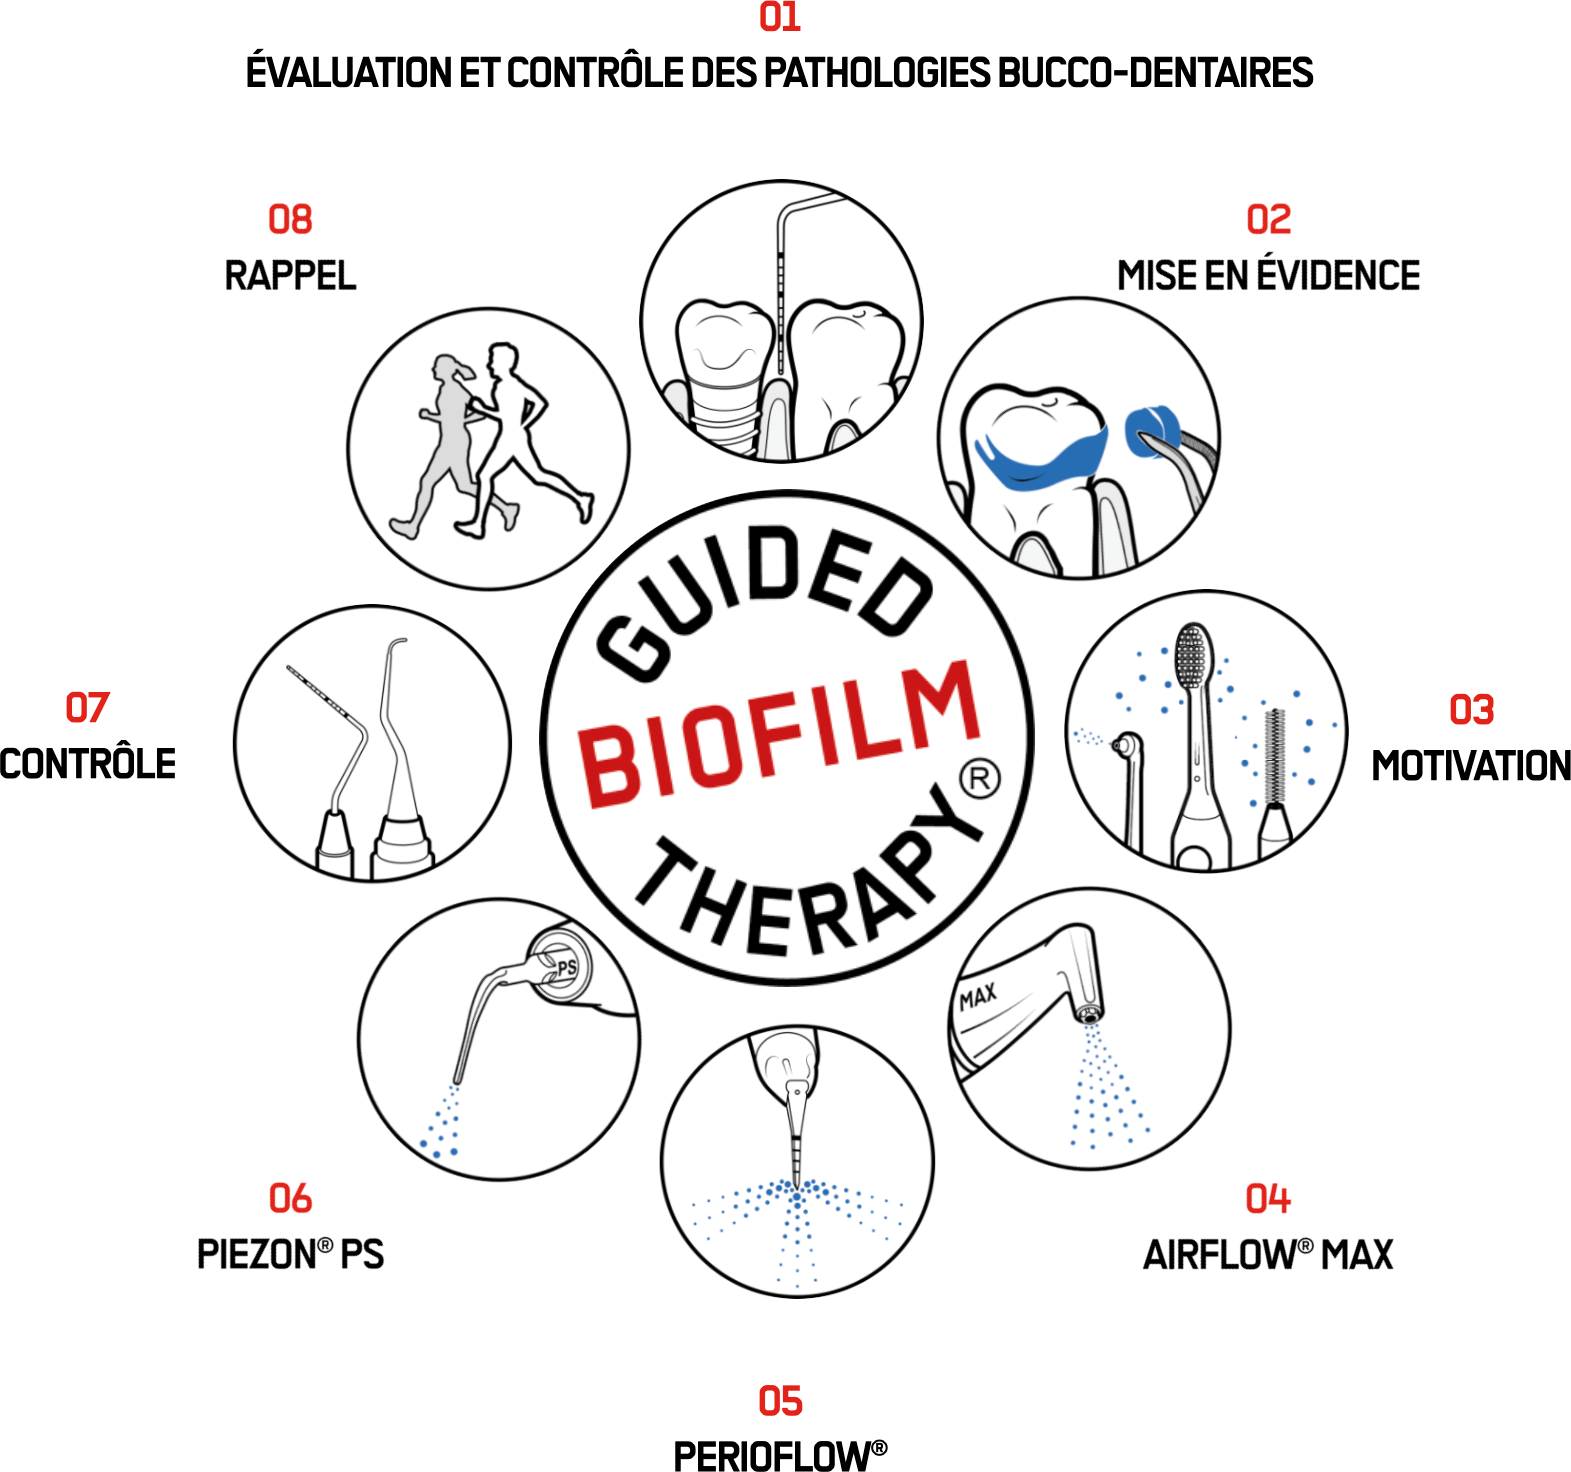 Guided Biofilm Theropy